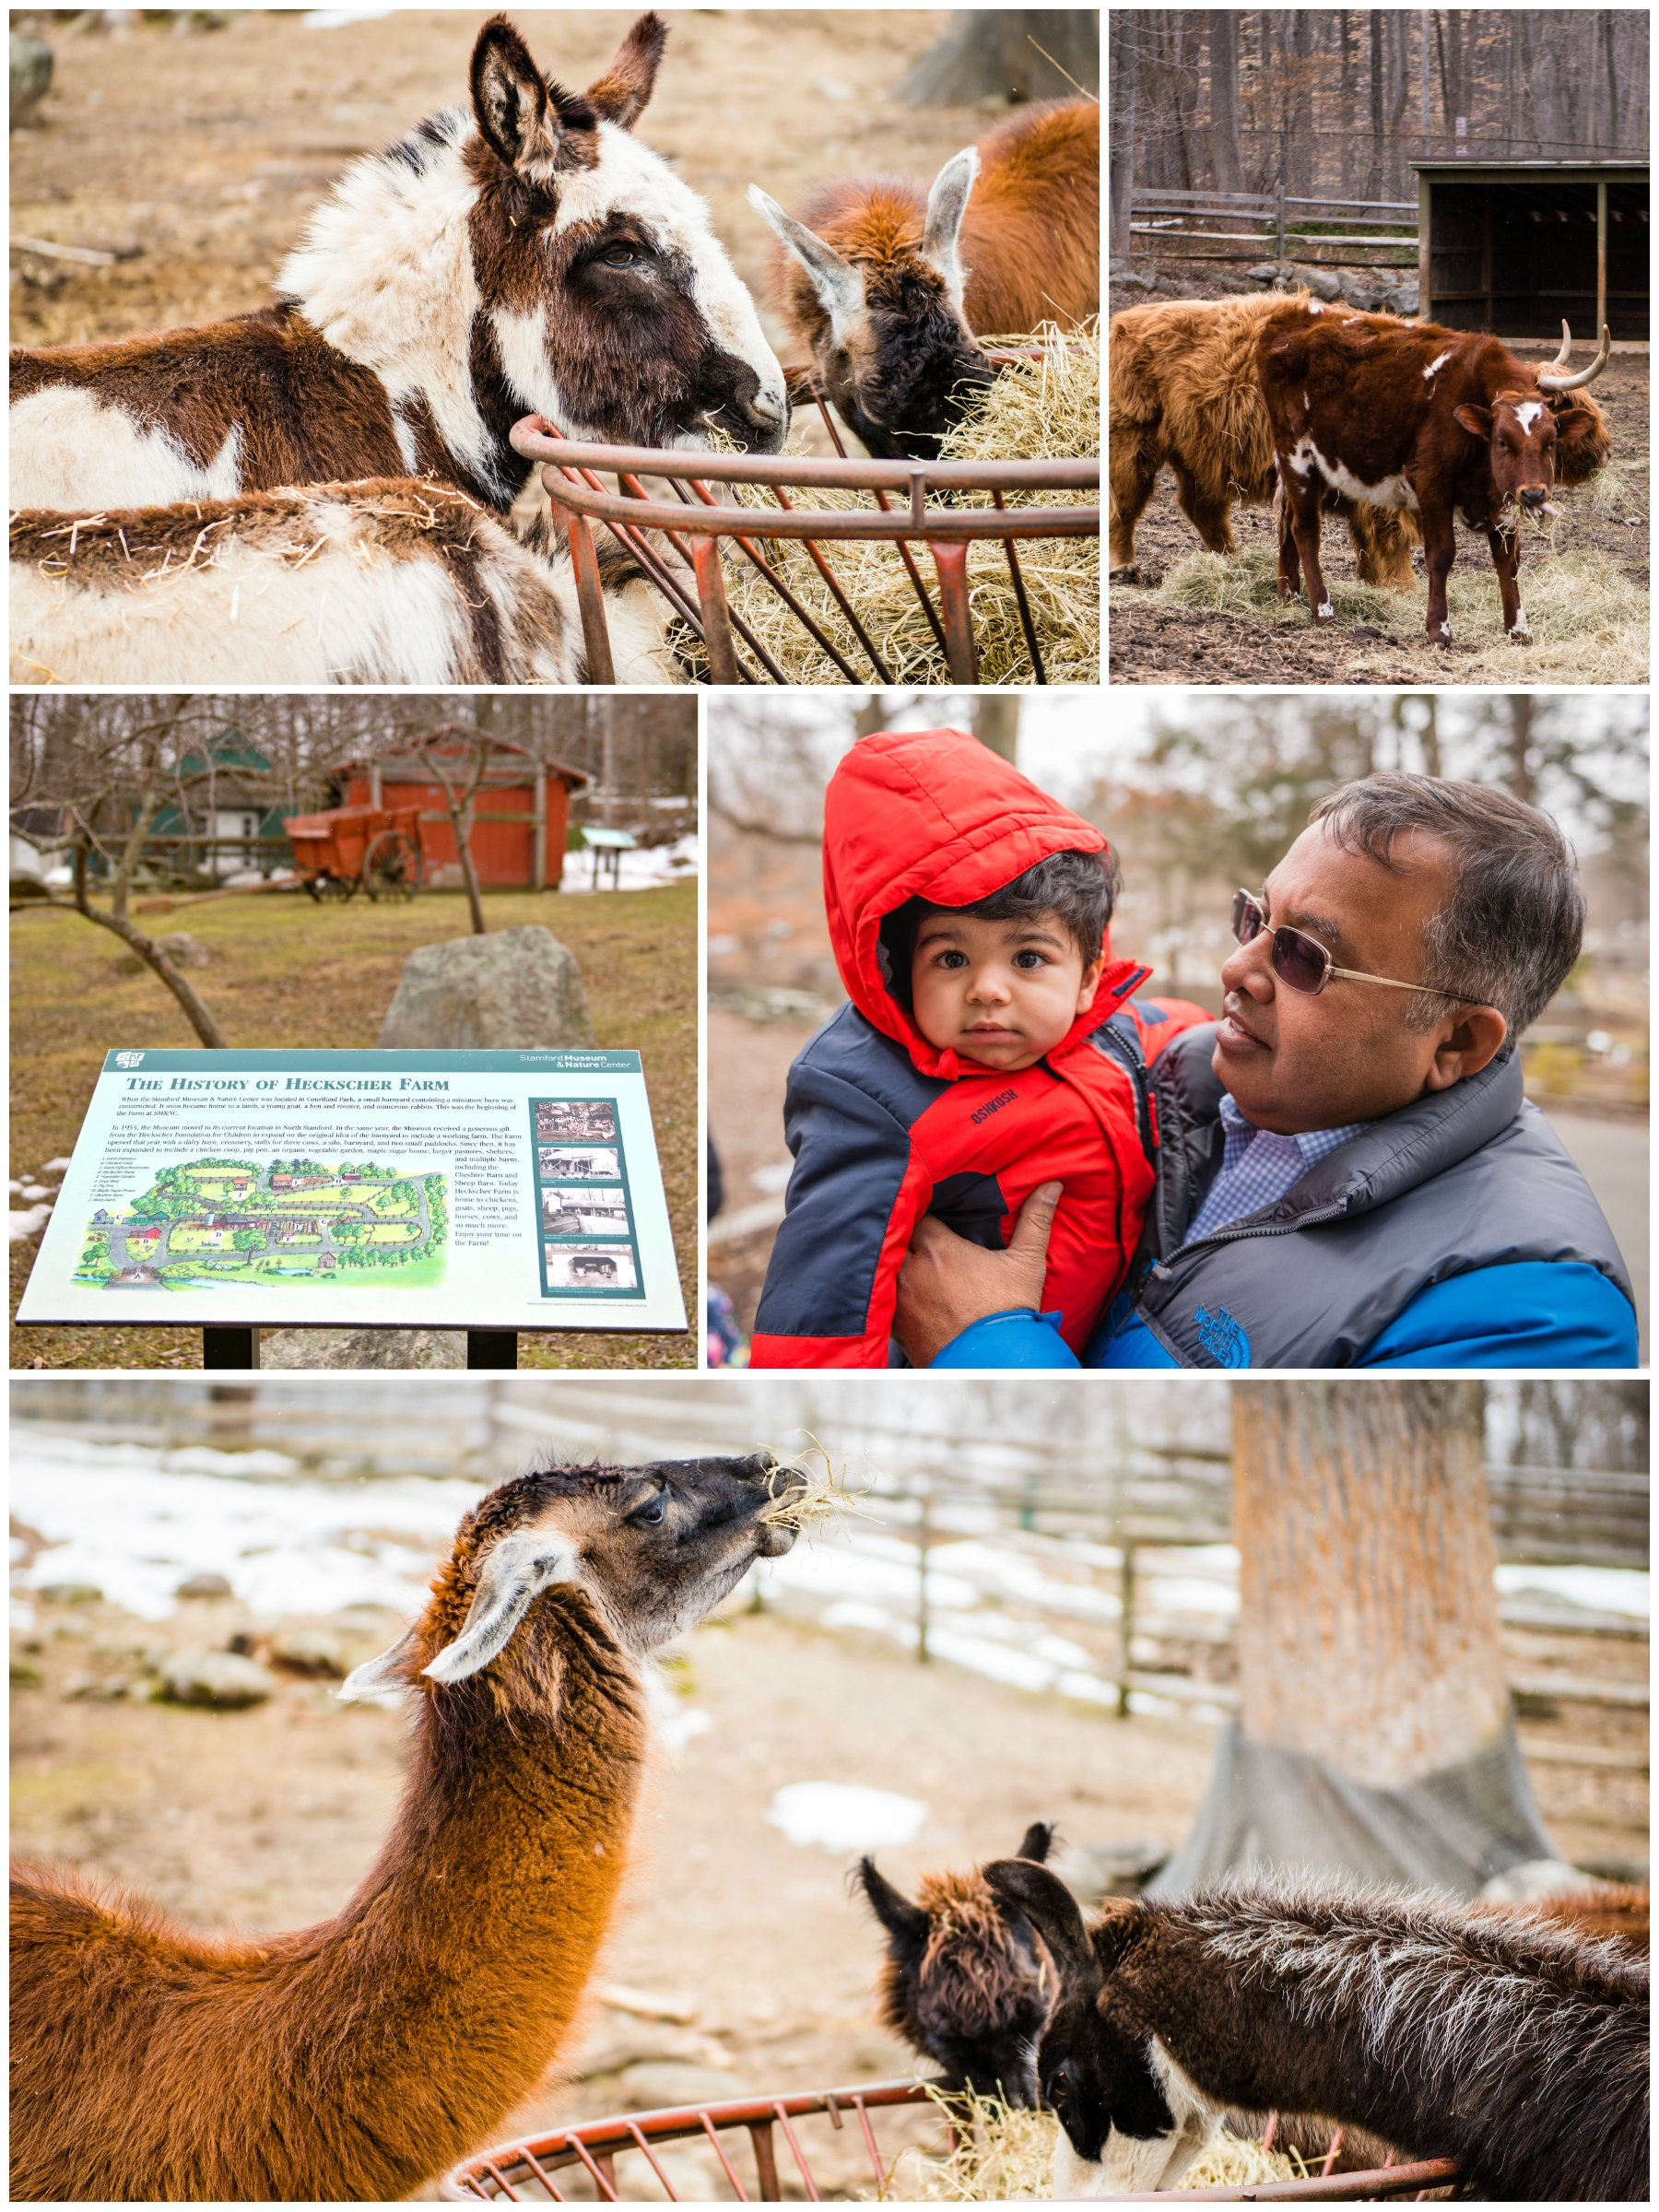 Some shots from Hecksher Farm during feeding time before the party.